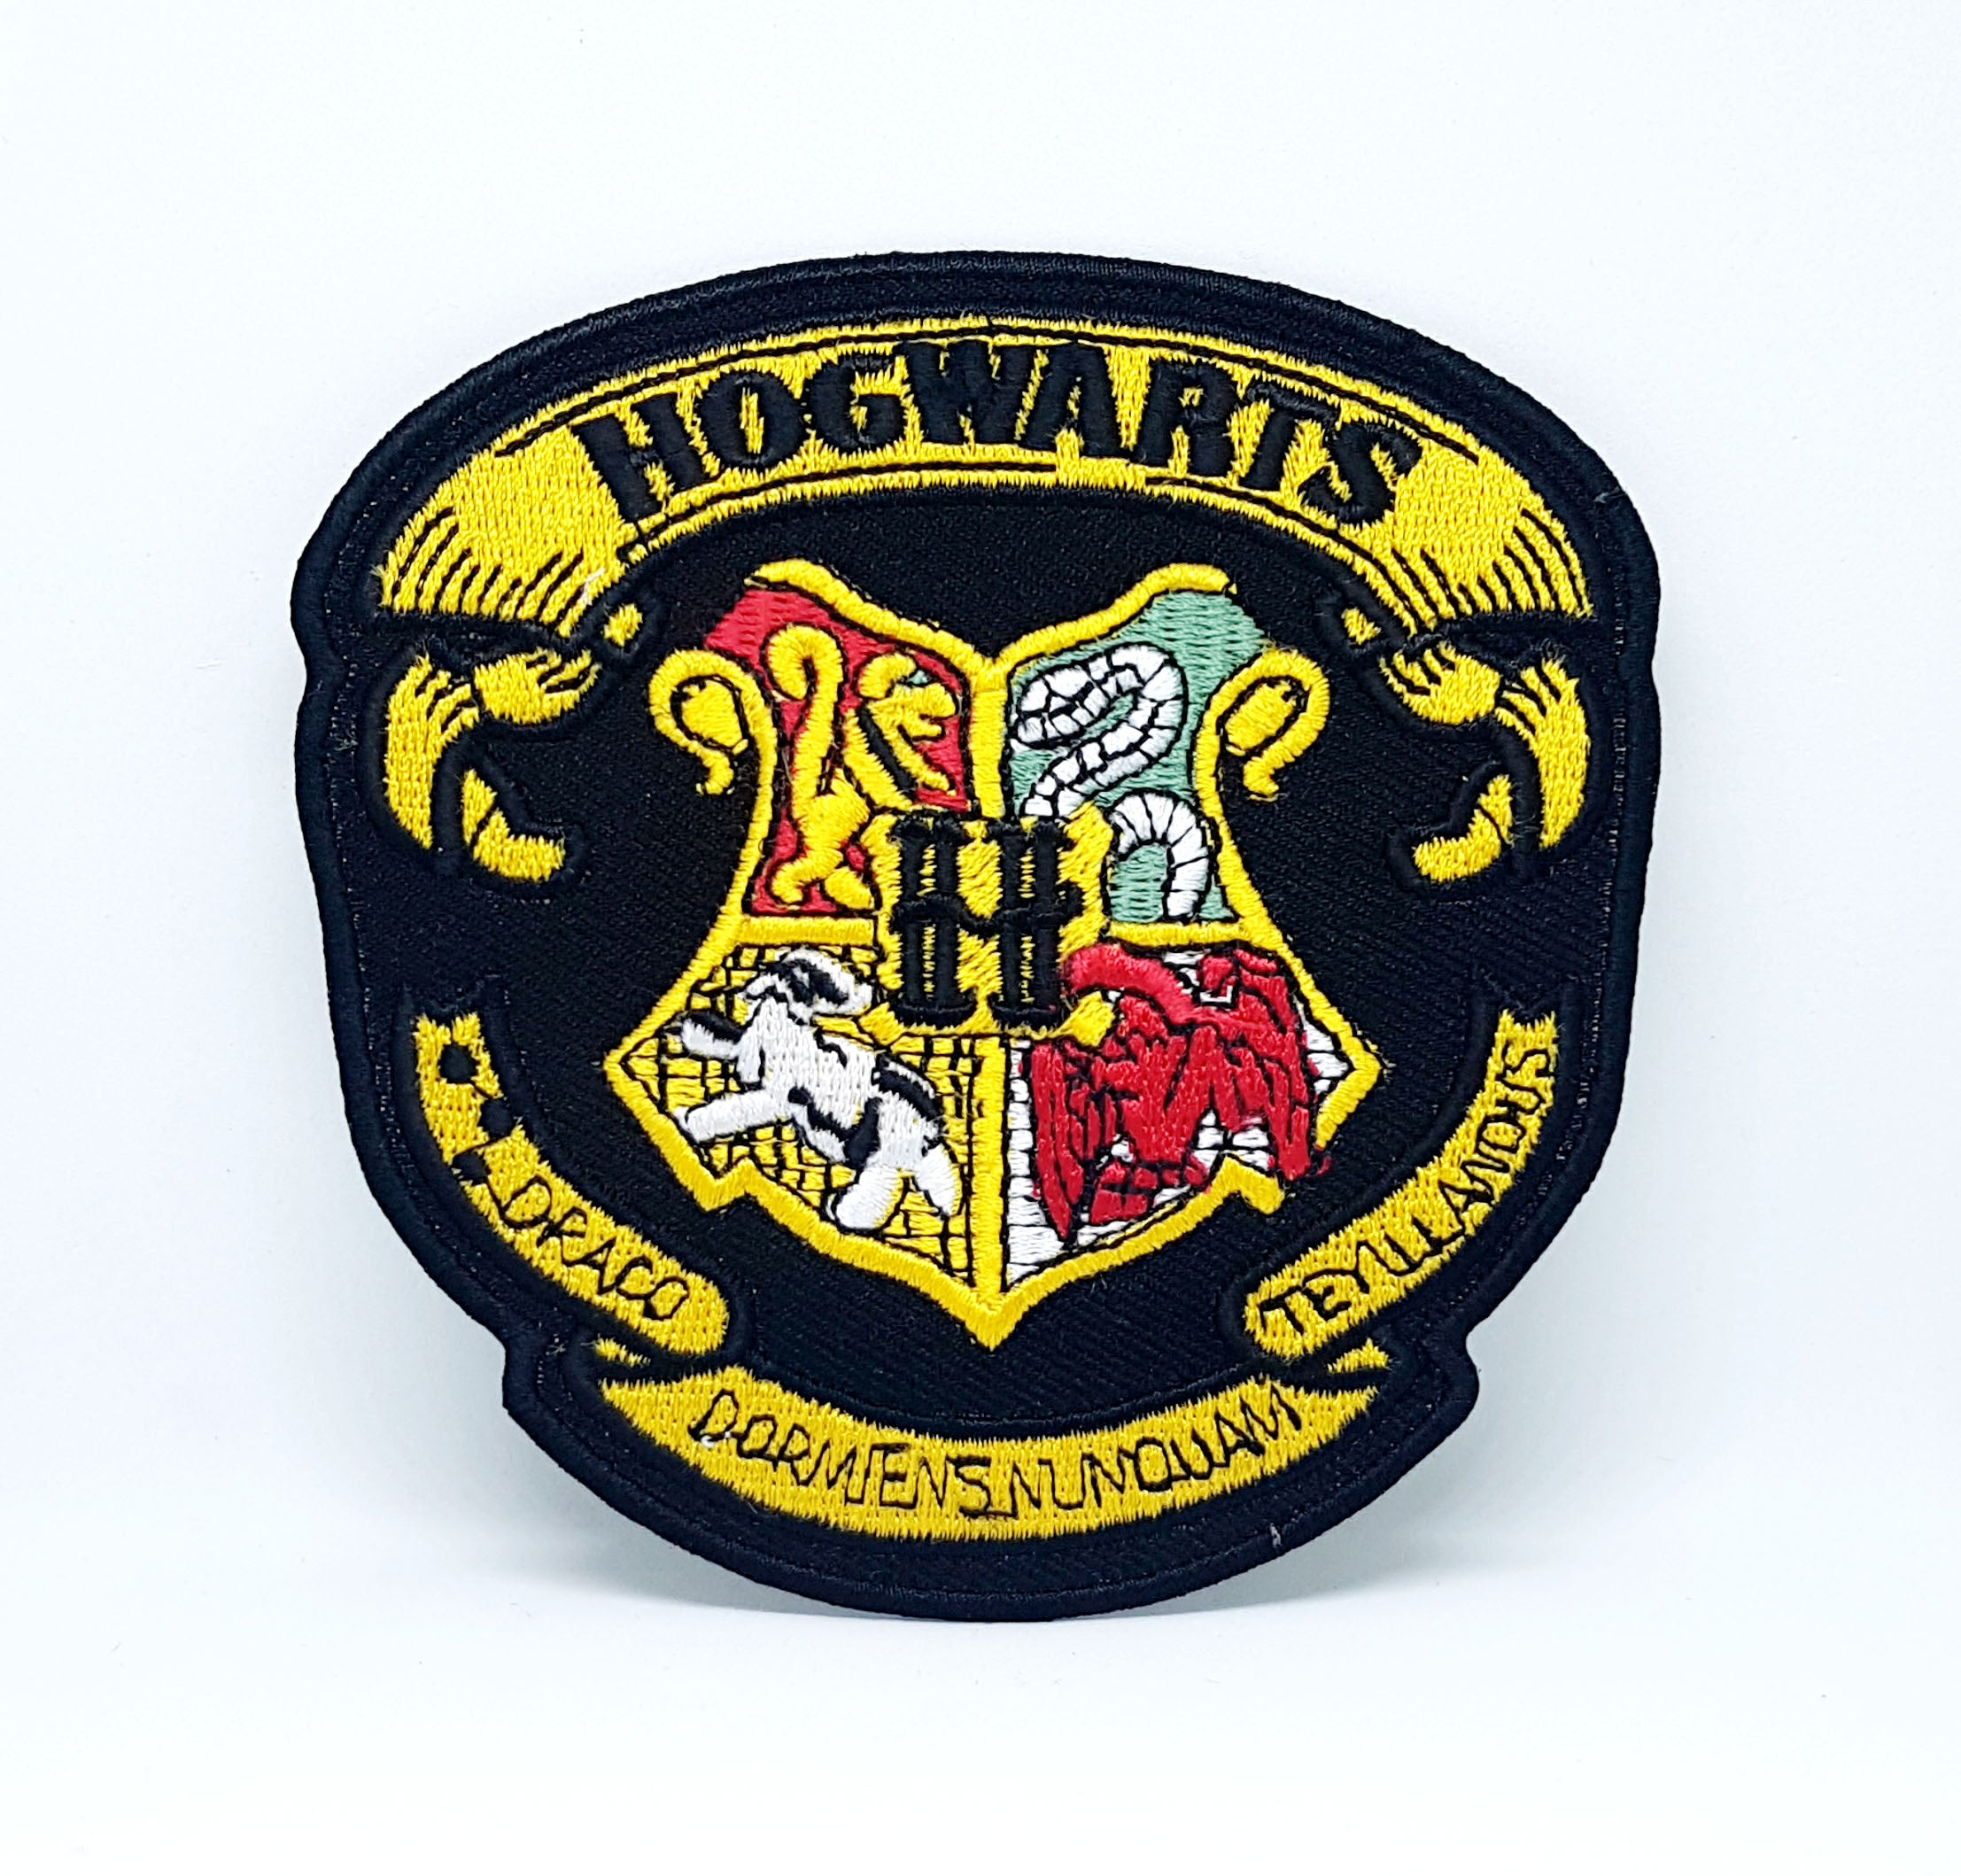 Harry Potter HOGWARTS Yellow on Black Iron Sew on Embroidered Patch - Patches-Badges